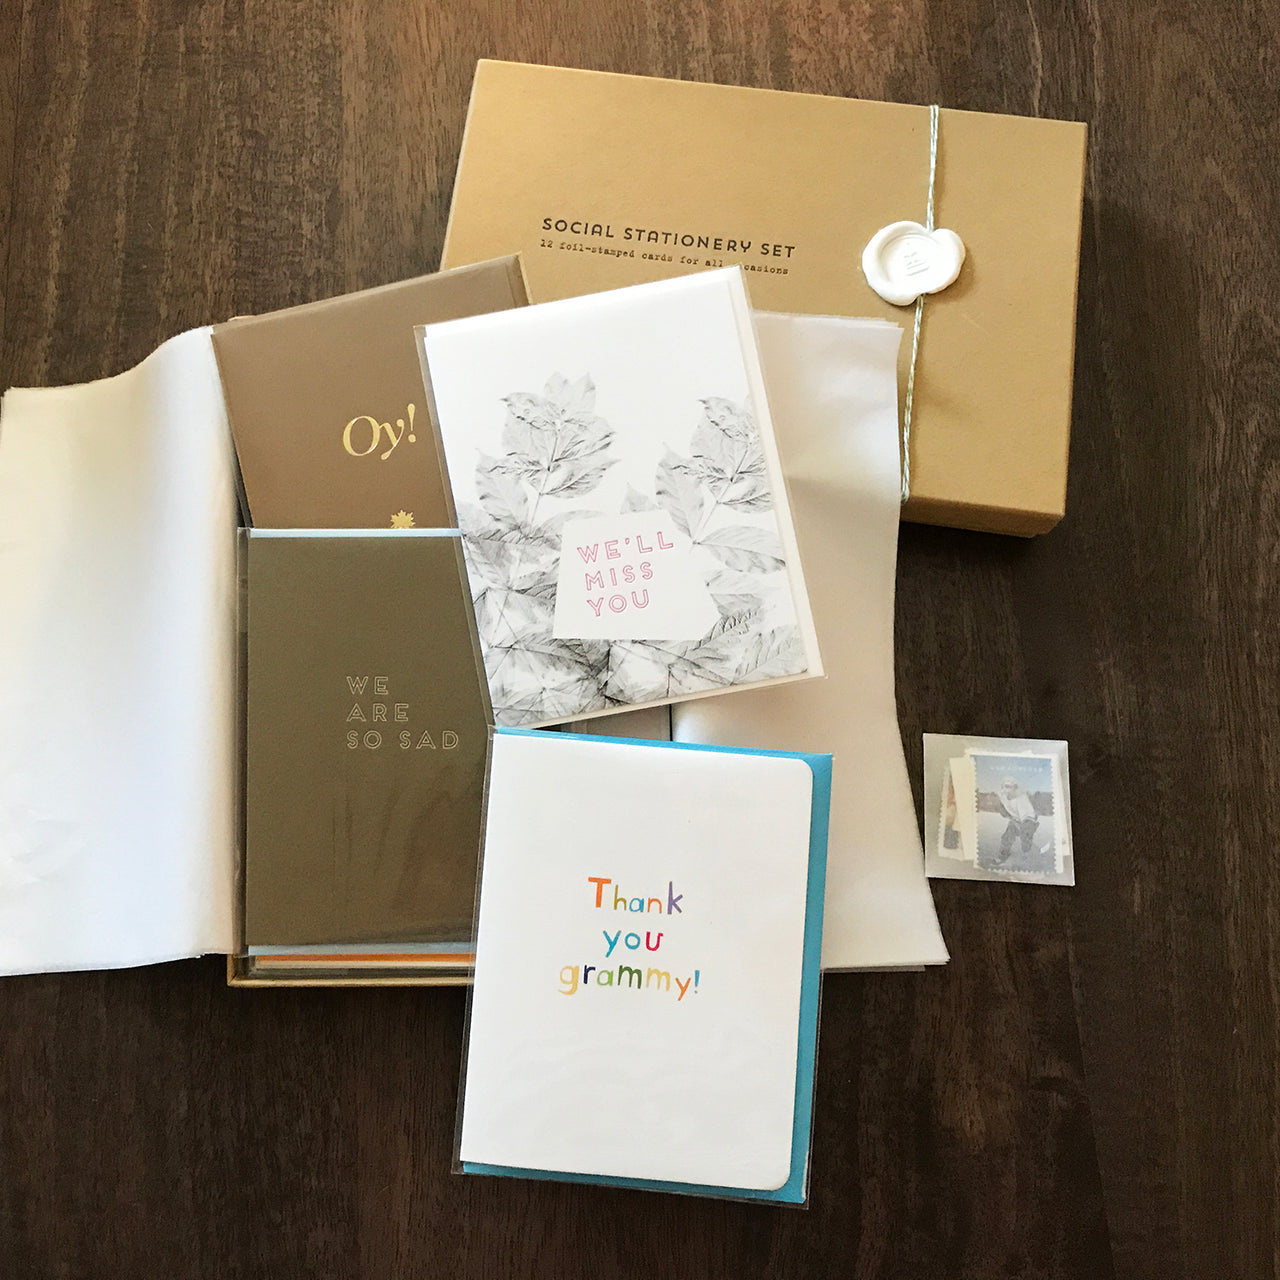 SOCIAL STATIONERY SET - FAMILY Edition